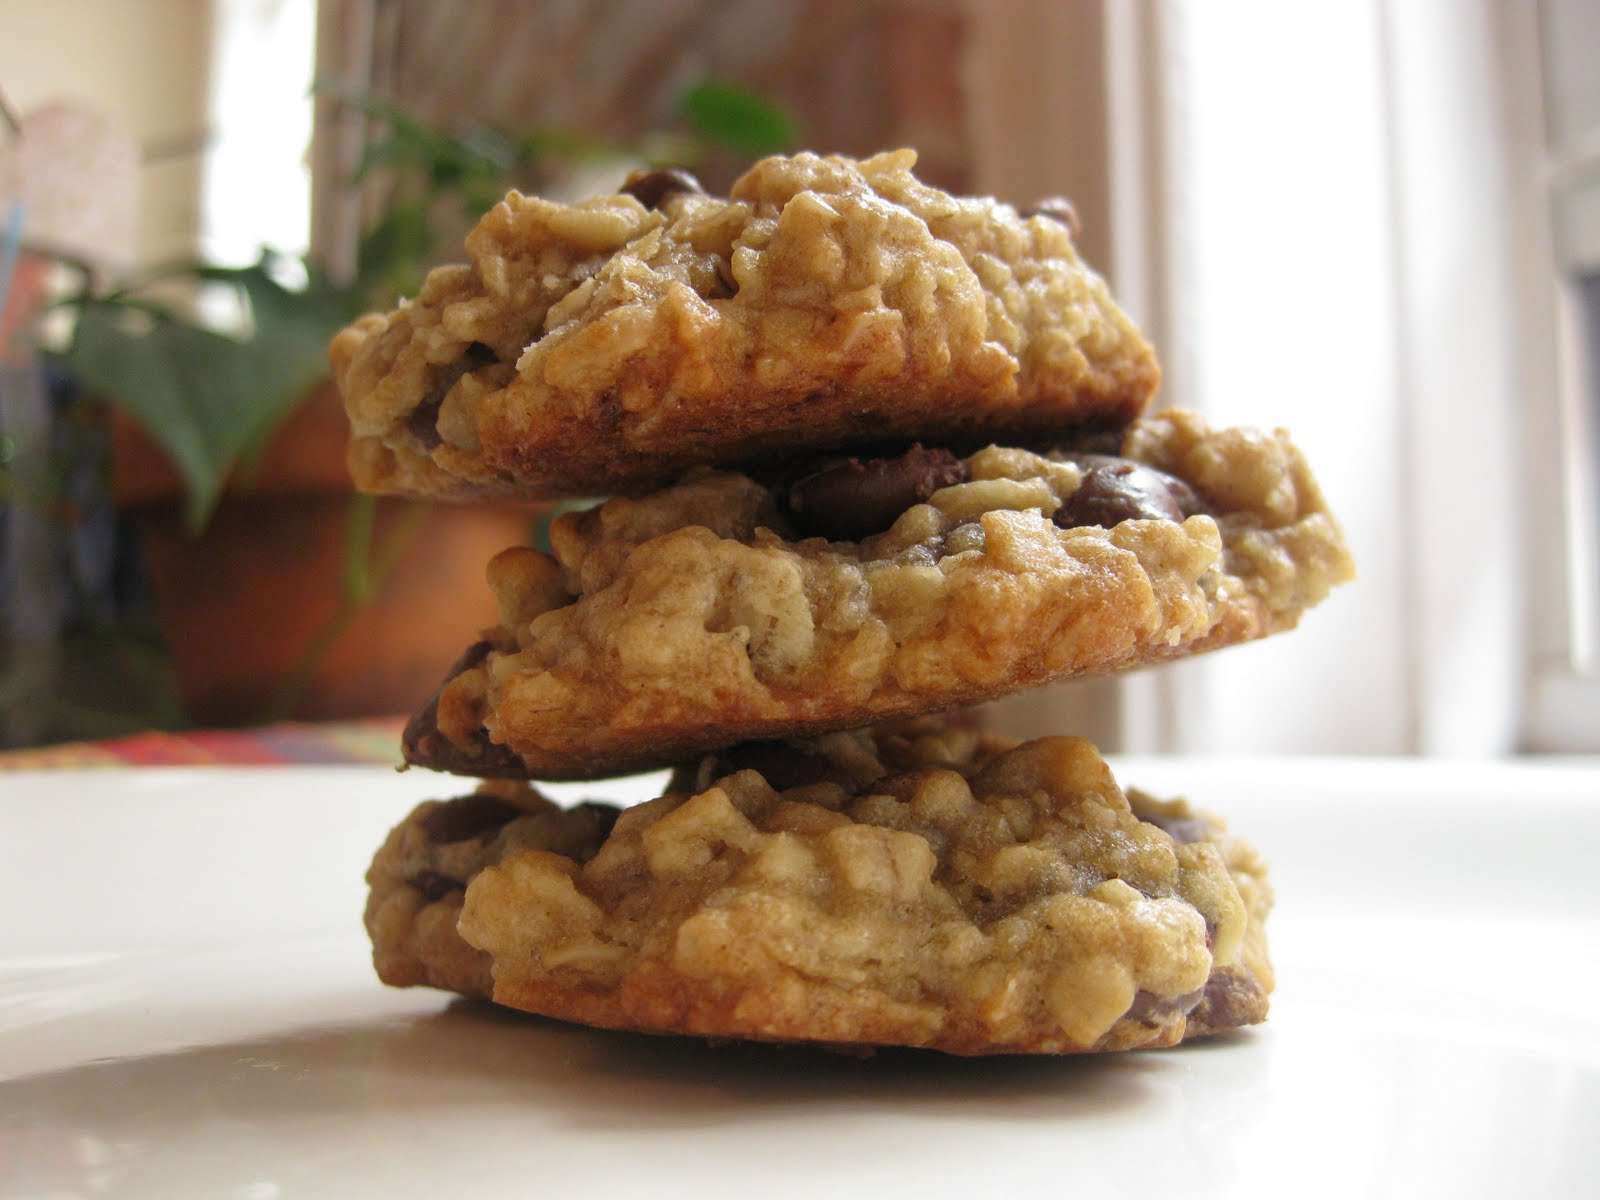 Sunday Treats: Banana Oatmeal Chocolate Chip Cookies